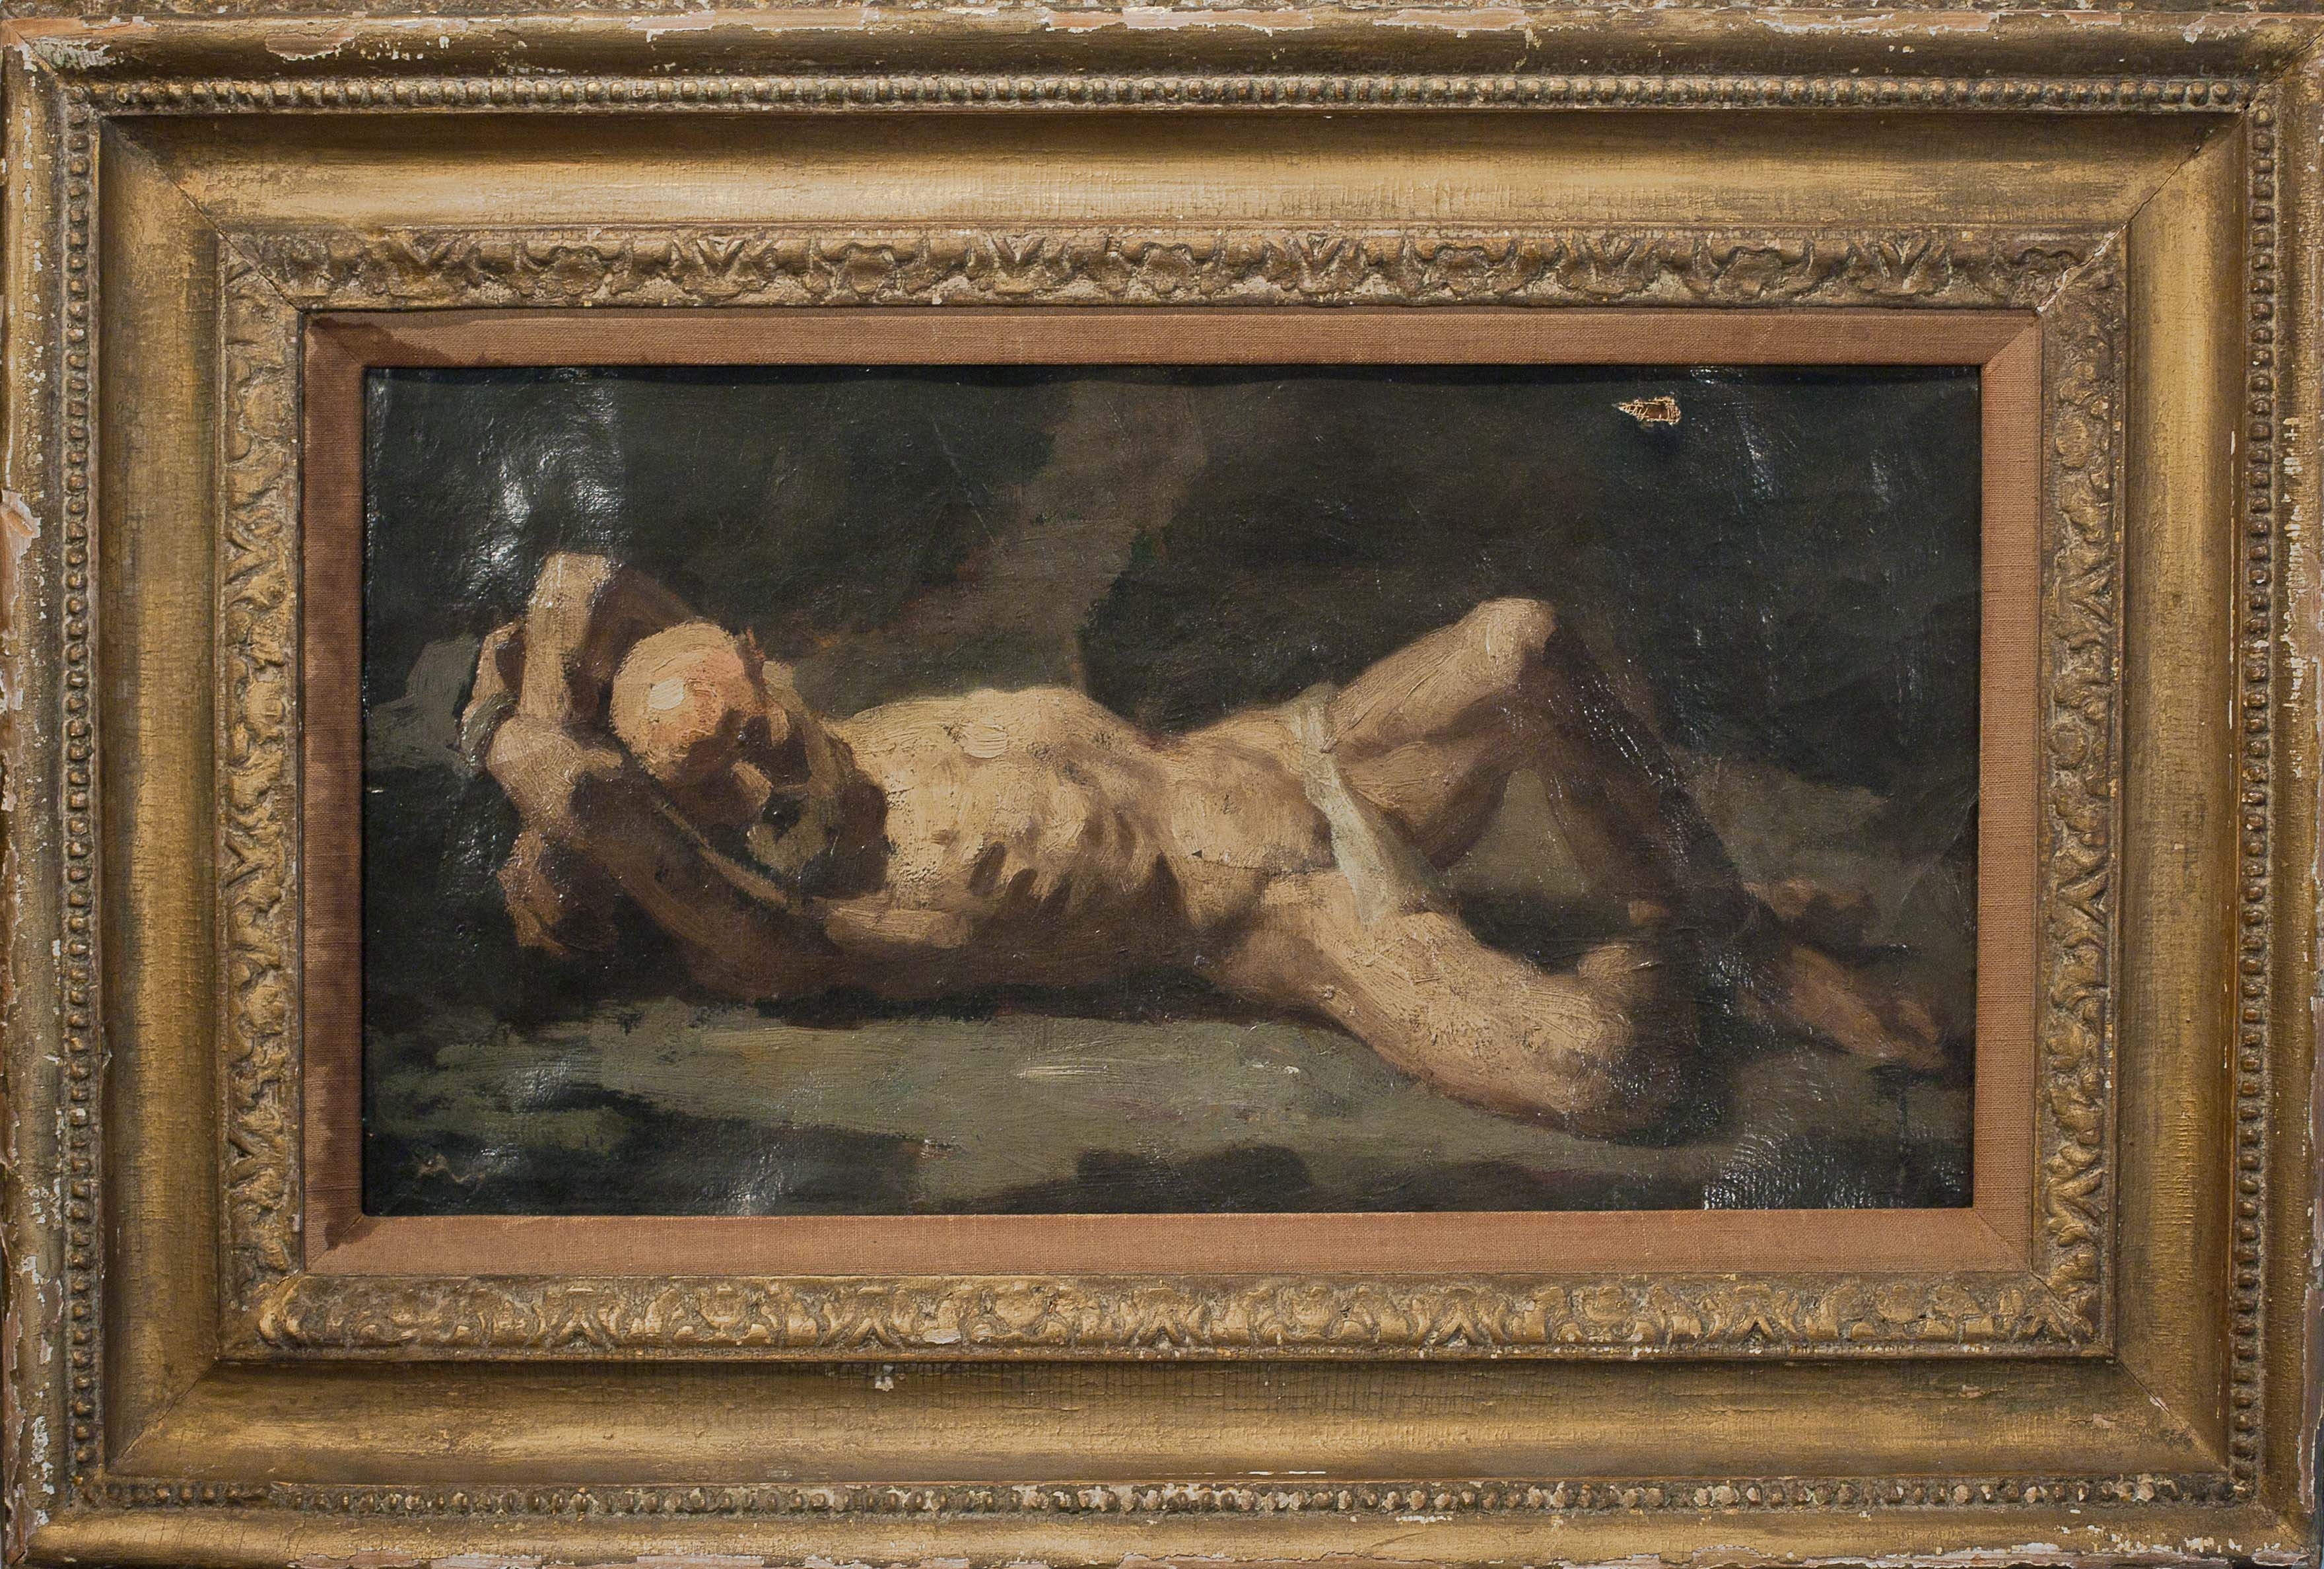 Old Man by Unknown. Oil on canvas. 10.0 in x 17.0 in. 1850